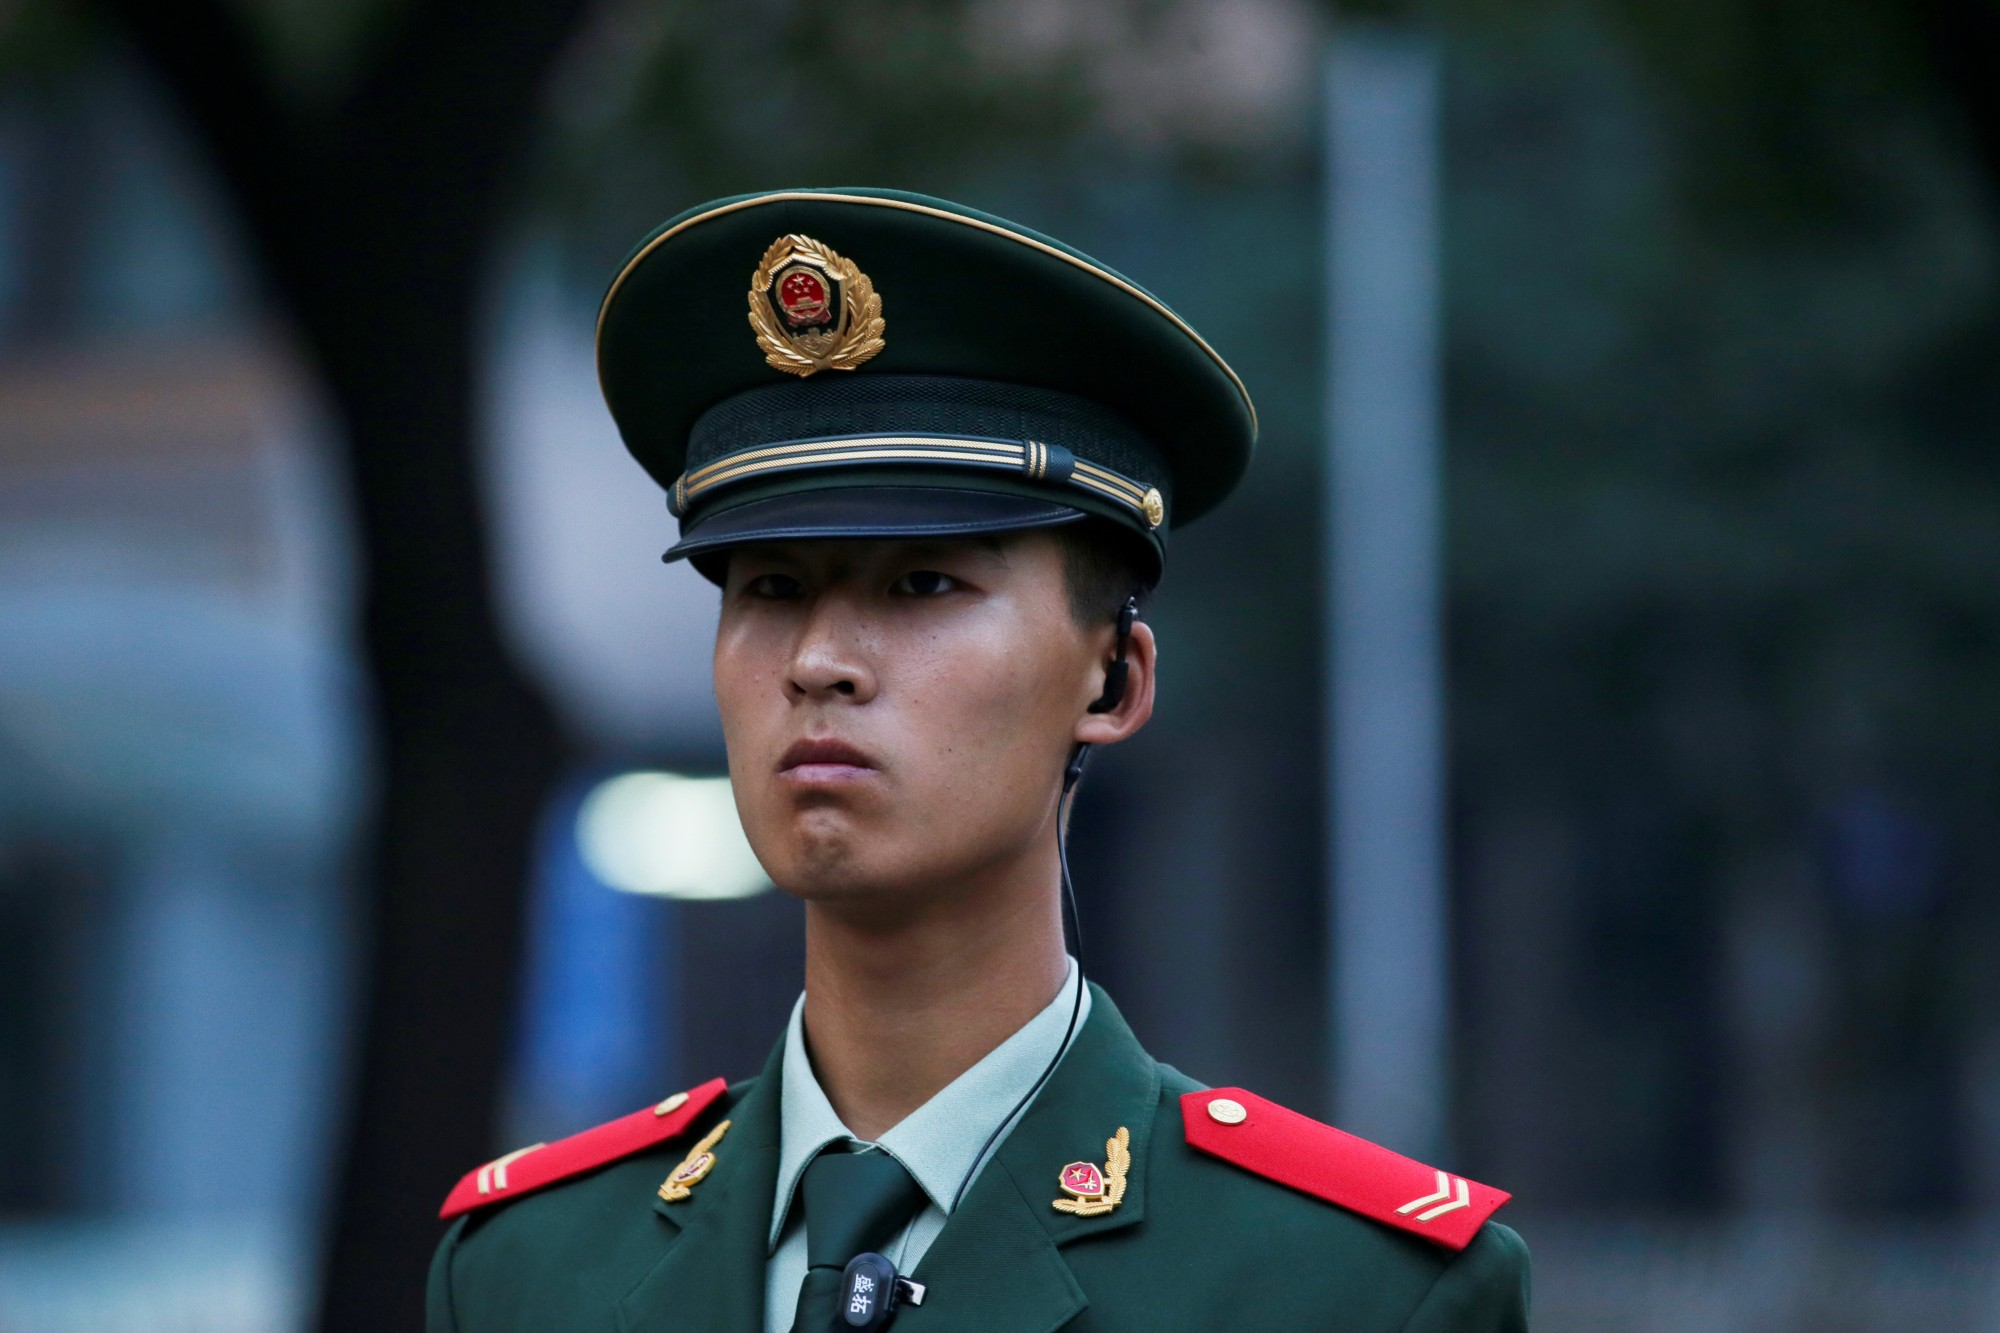 A paramilitary police officer stands guard as streets in central Beijing were closed off for a rehearsal of the military parade on October 1 to mark the 70th anniversary of the founding of the People's Republic of China, in Beijing, China September 21, 2019. REUTERS/Stringer